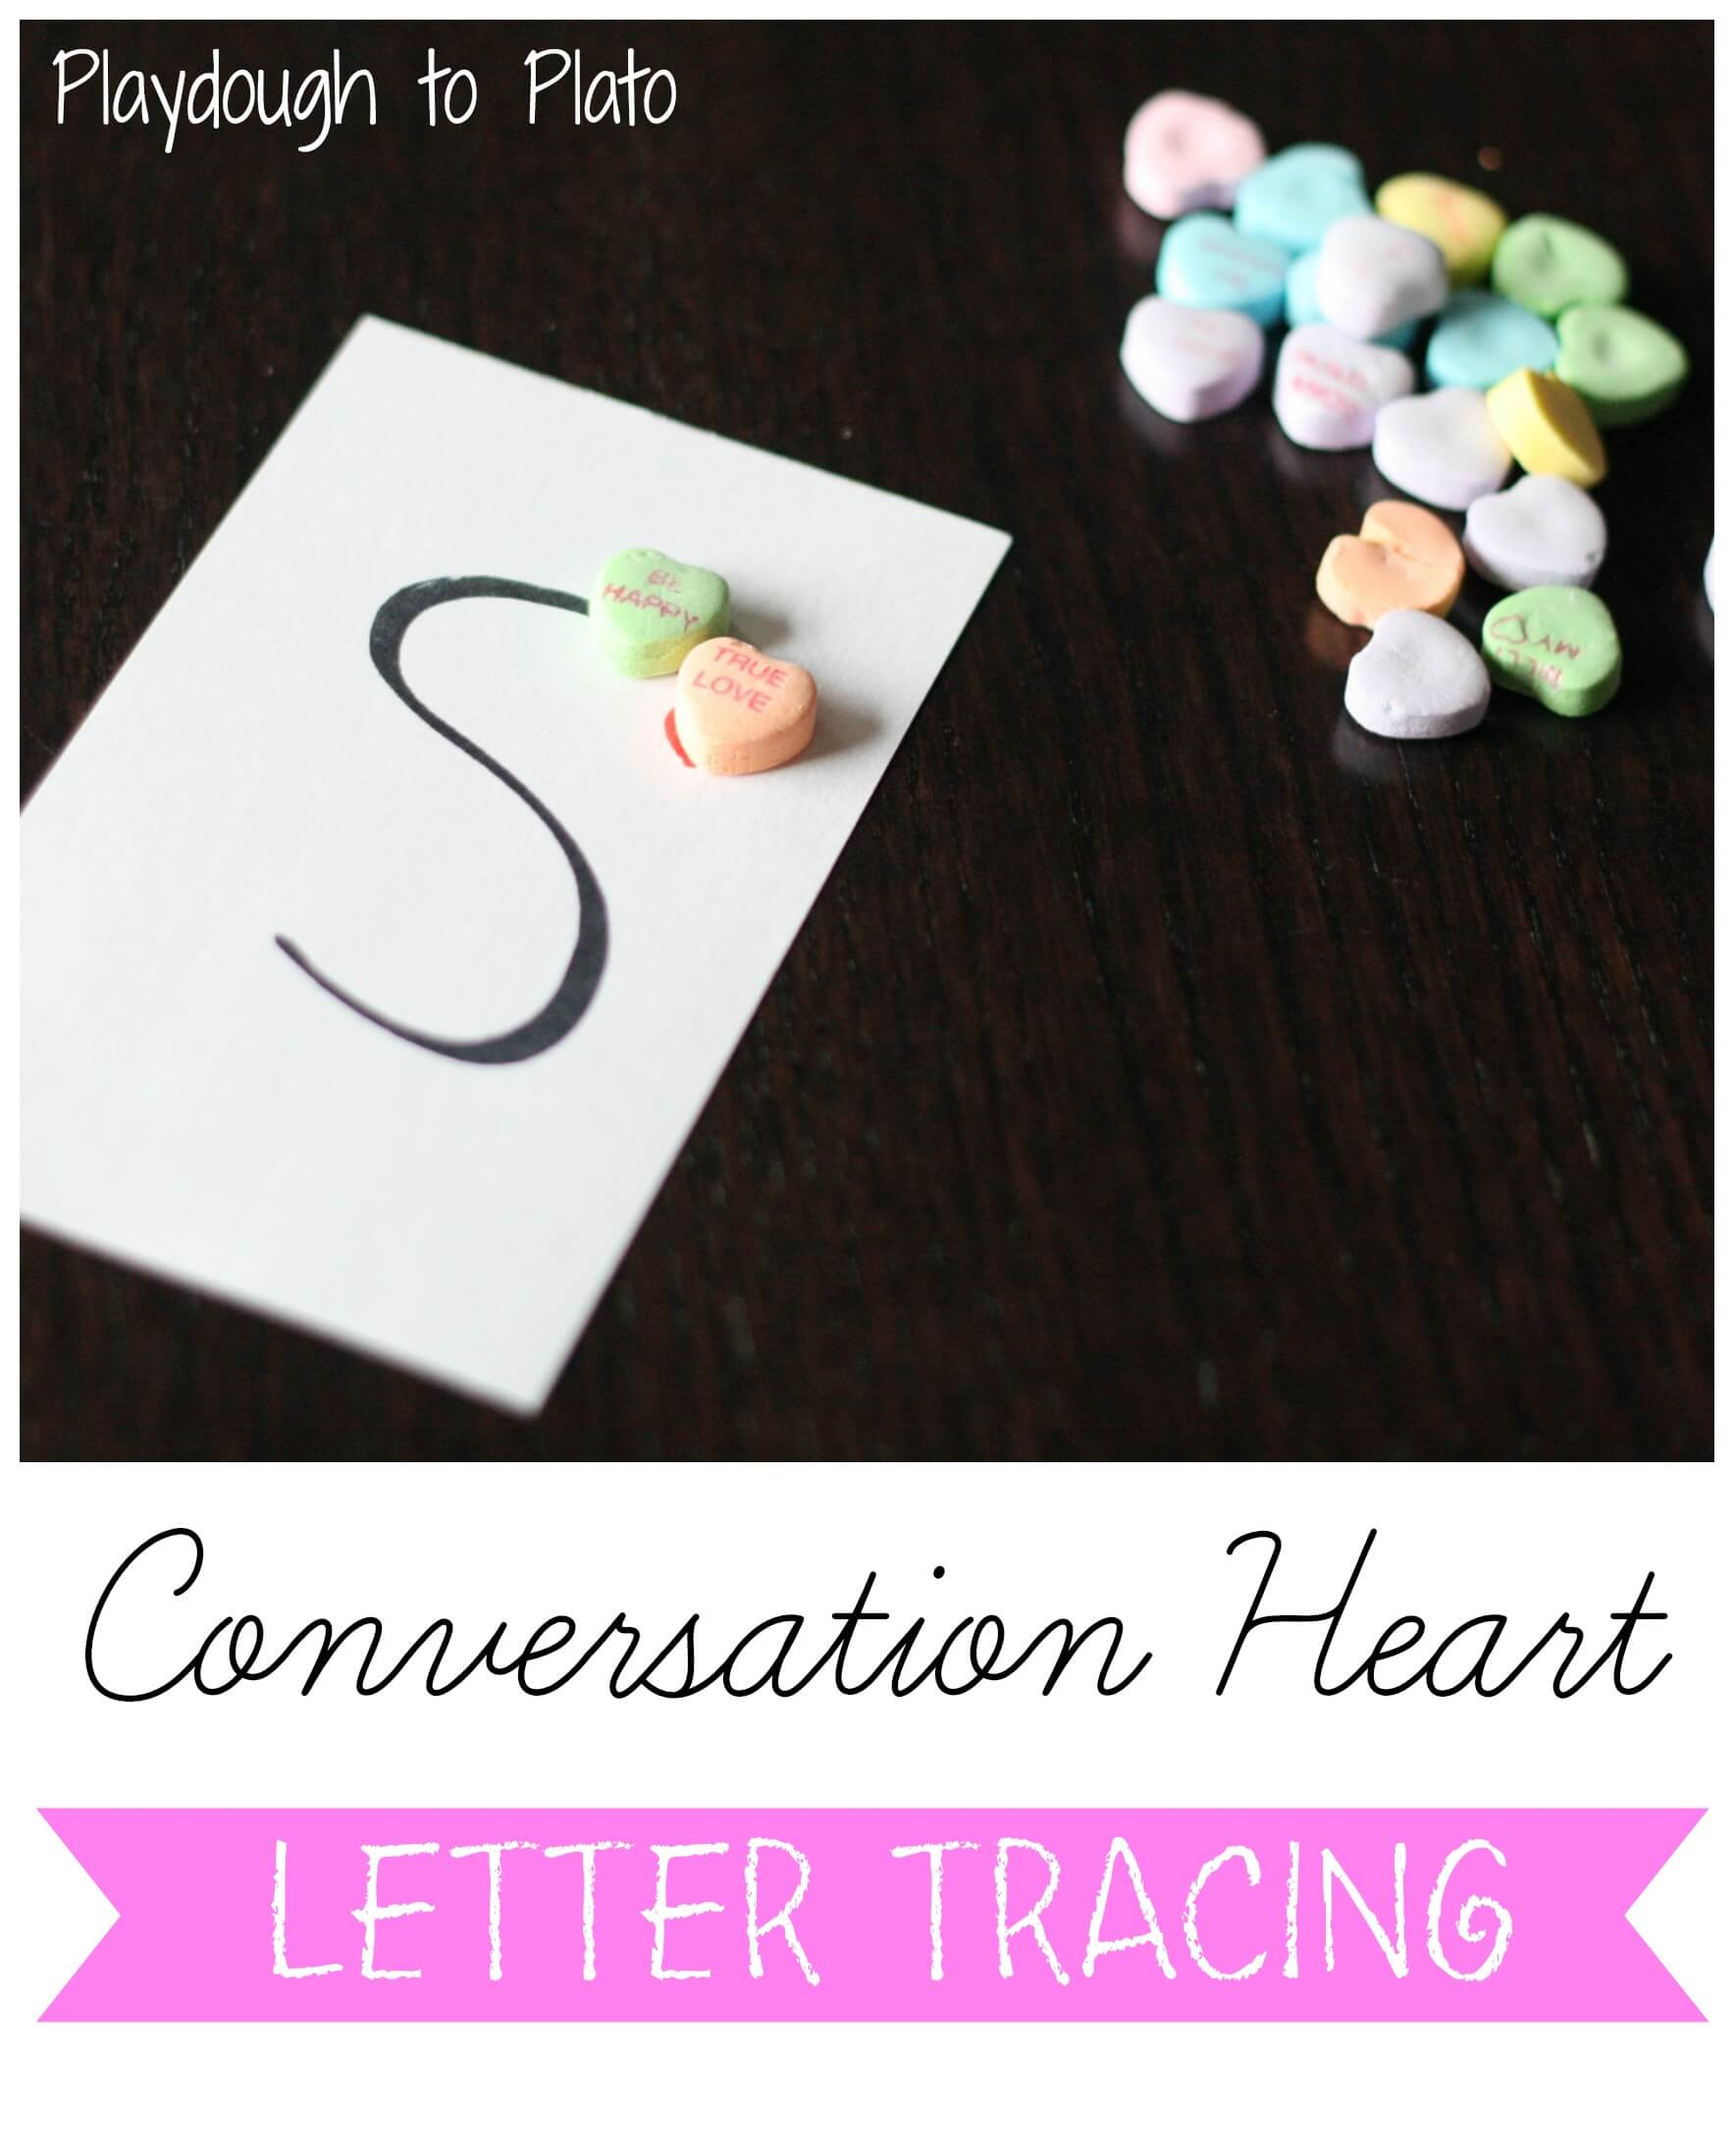 Conversation Heart Letter Tracing